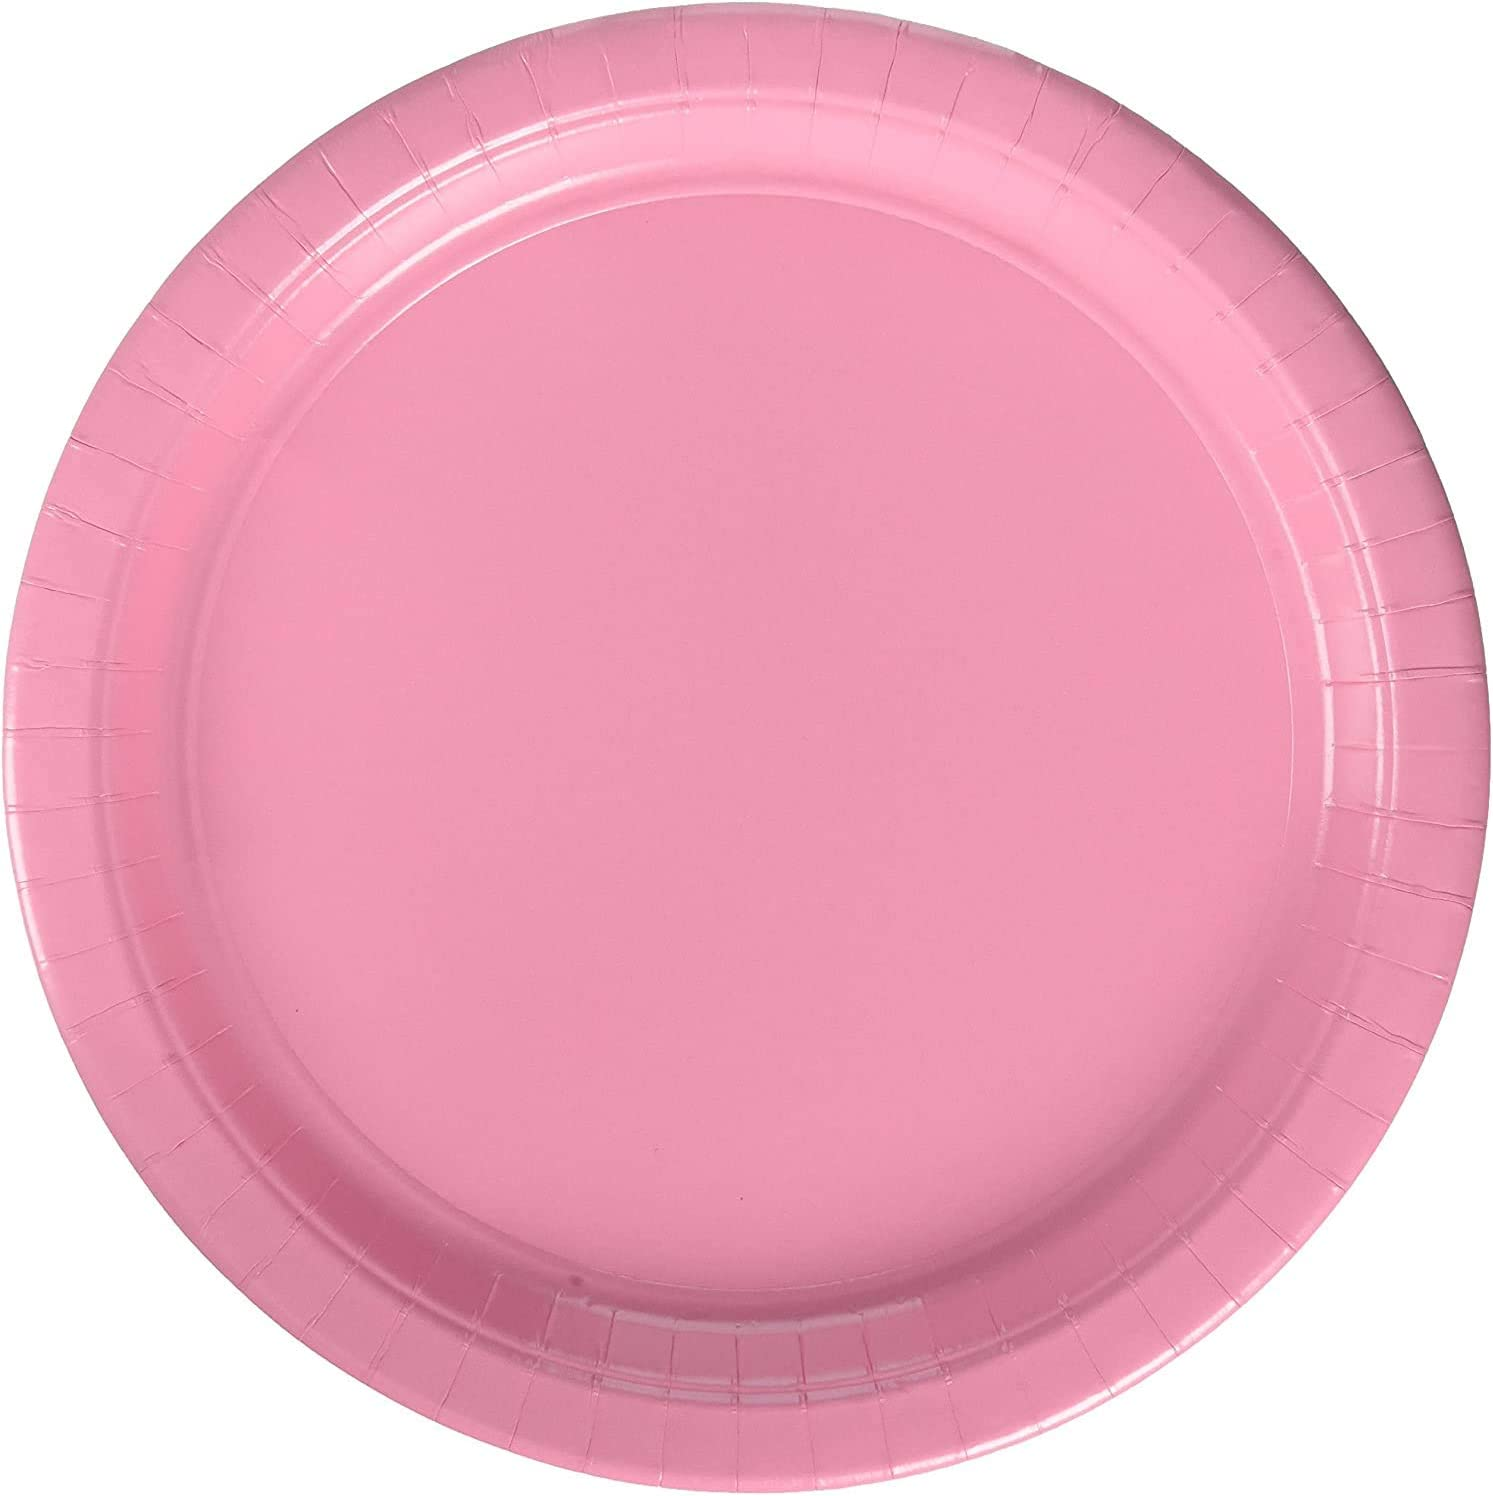 Amscan 650013.109 New Pink Paper Lunch Plates | Big Party Pack | 50ct, 9